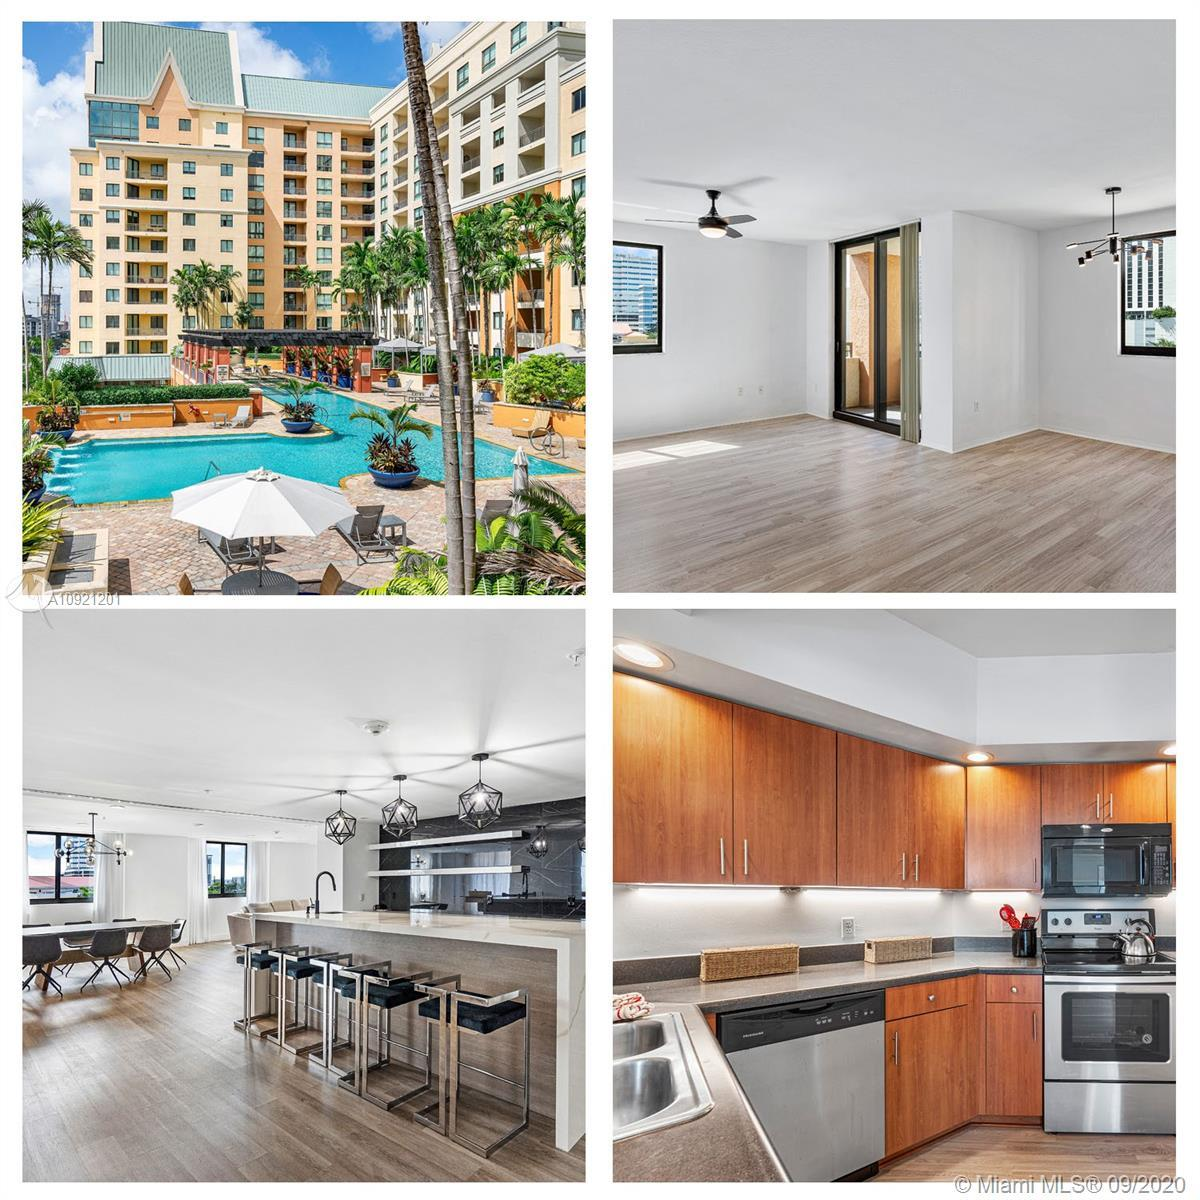 Prime pool/city view. Large pristine 3 bed 2 bath corner unit @ the Waverly at Las Olas, one of Down